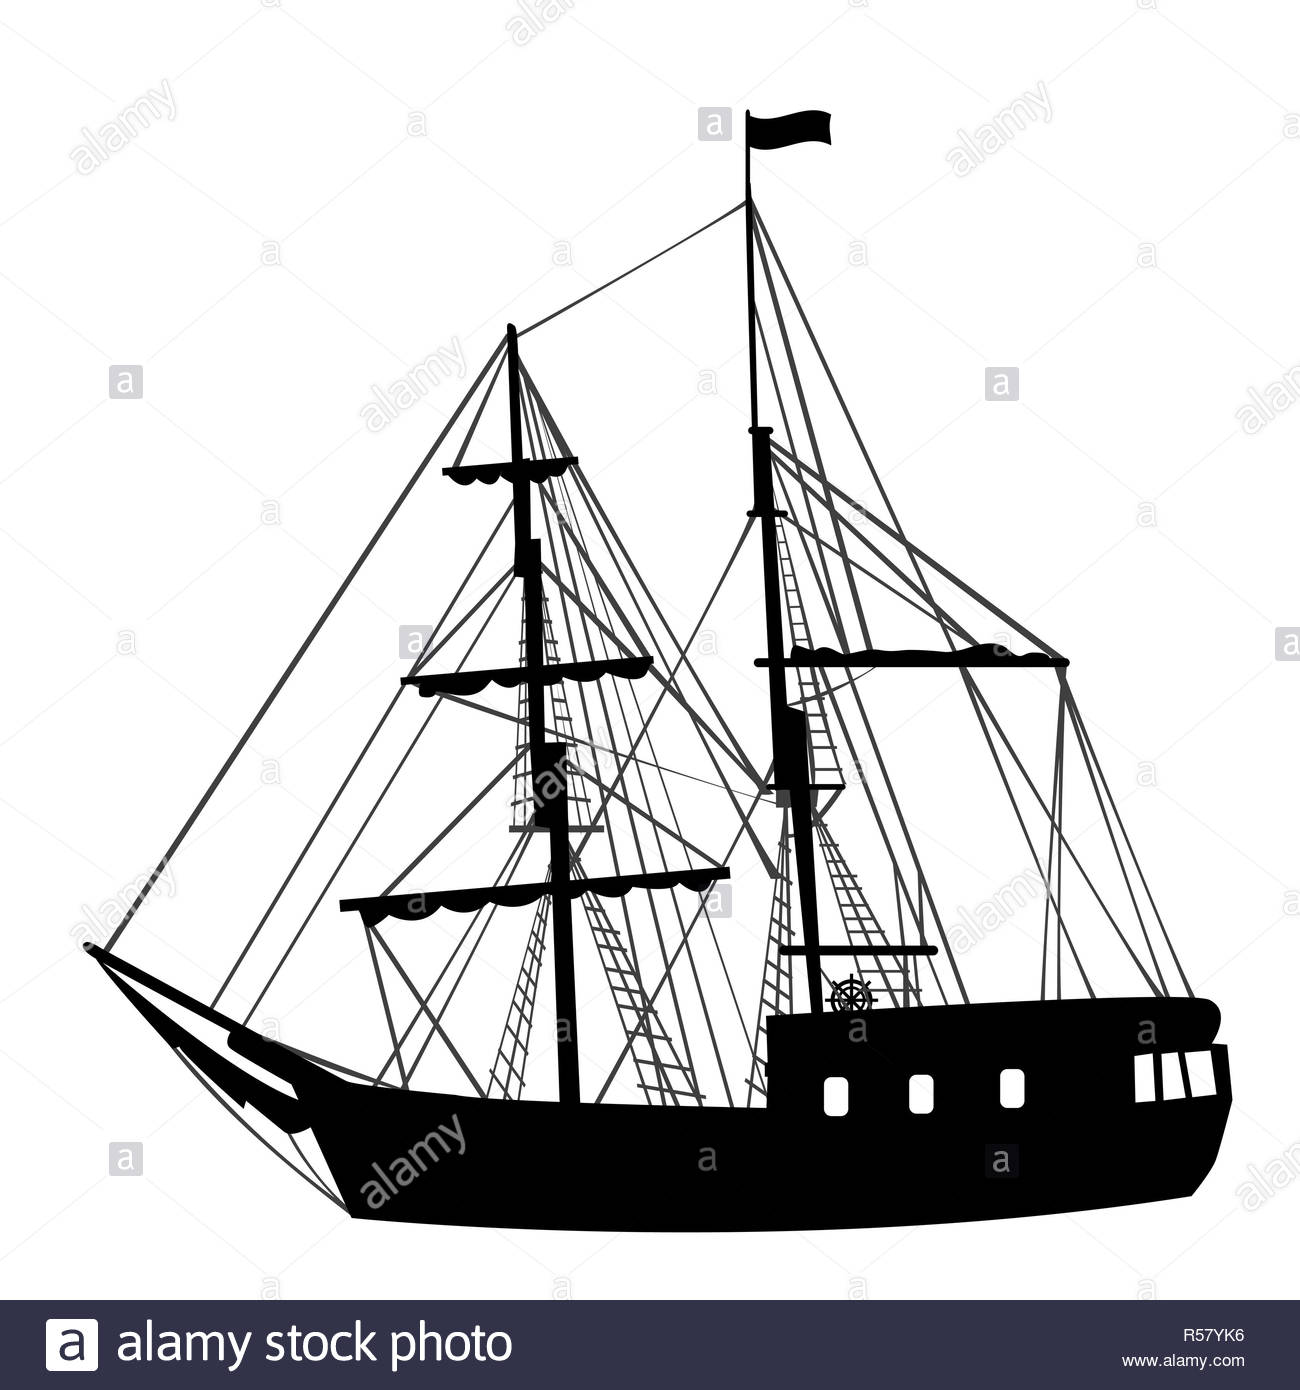 Silhouette of sailing ship on white background - Stock Image